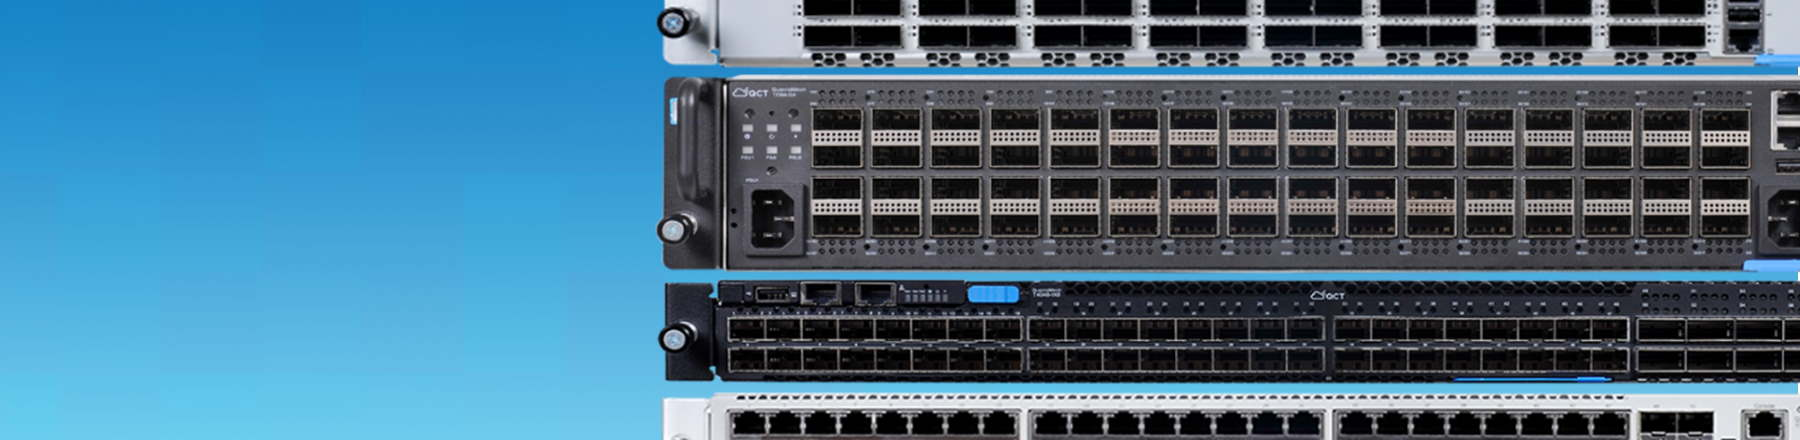 Networking - Ethernet & Bare Metal Switches